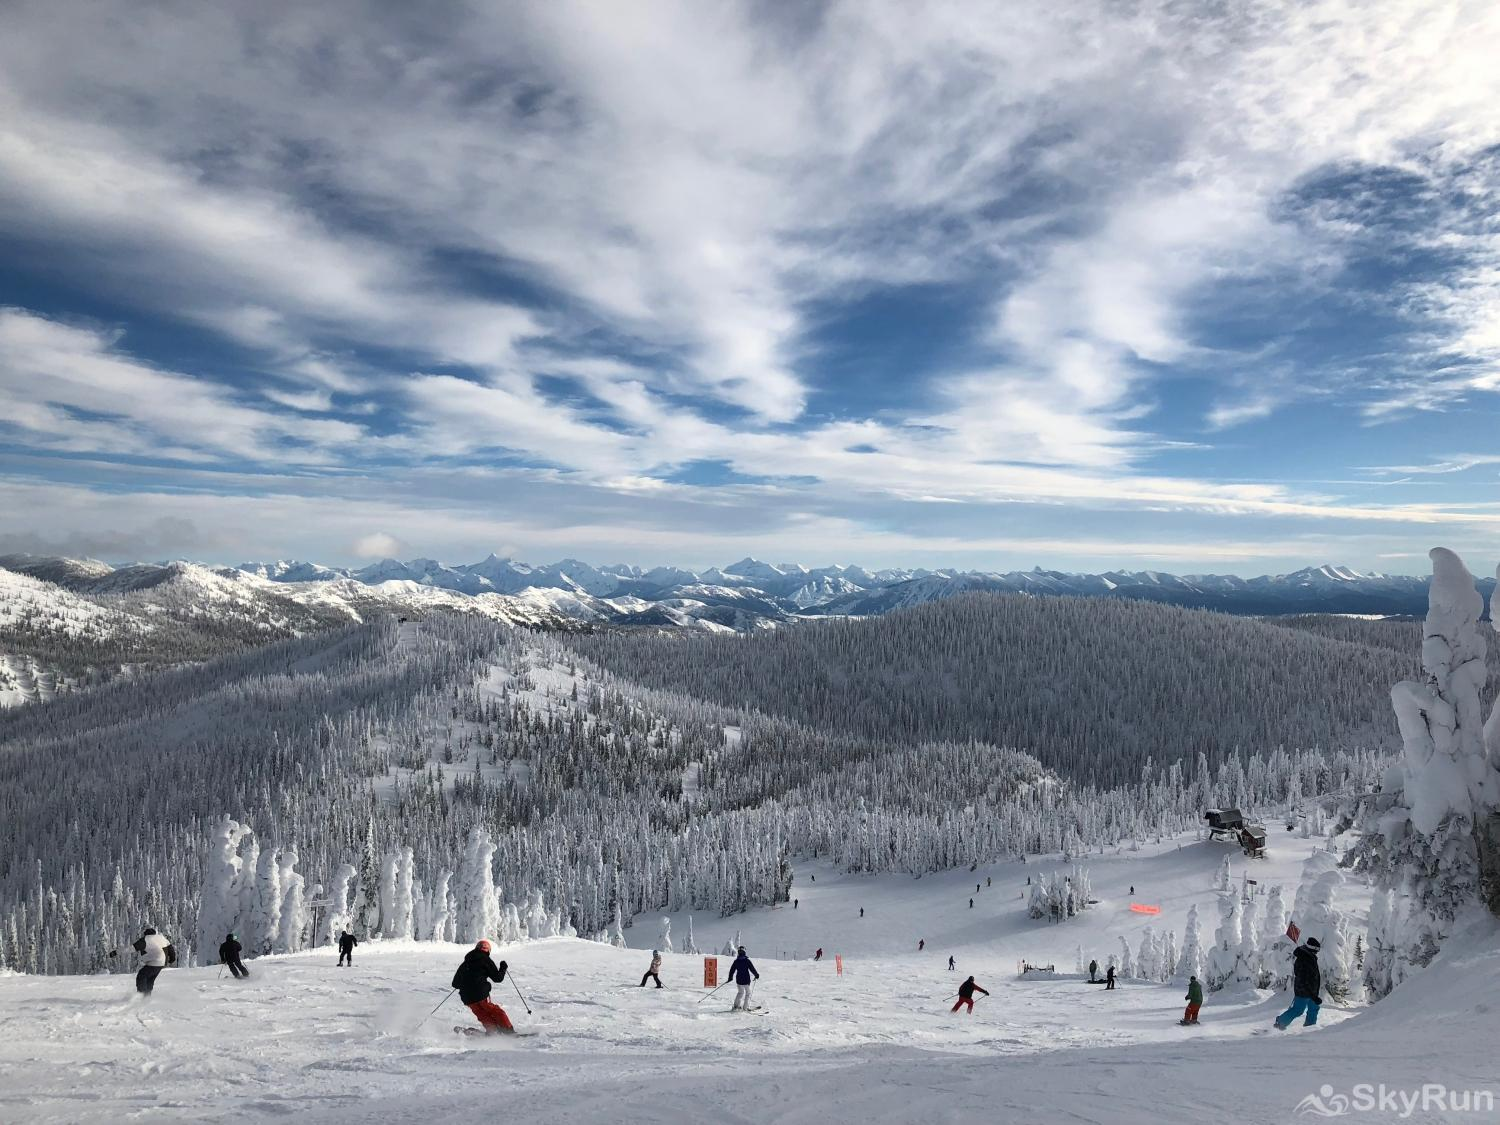 Highland Huckleberry Lodge Come and ski one of the best kept secrets in the Rockies!